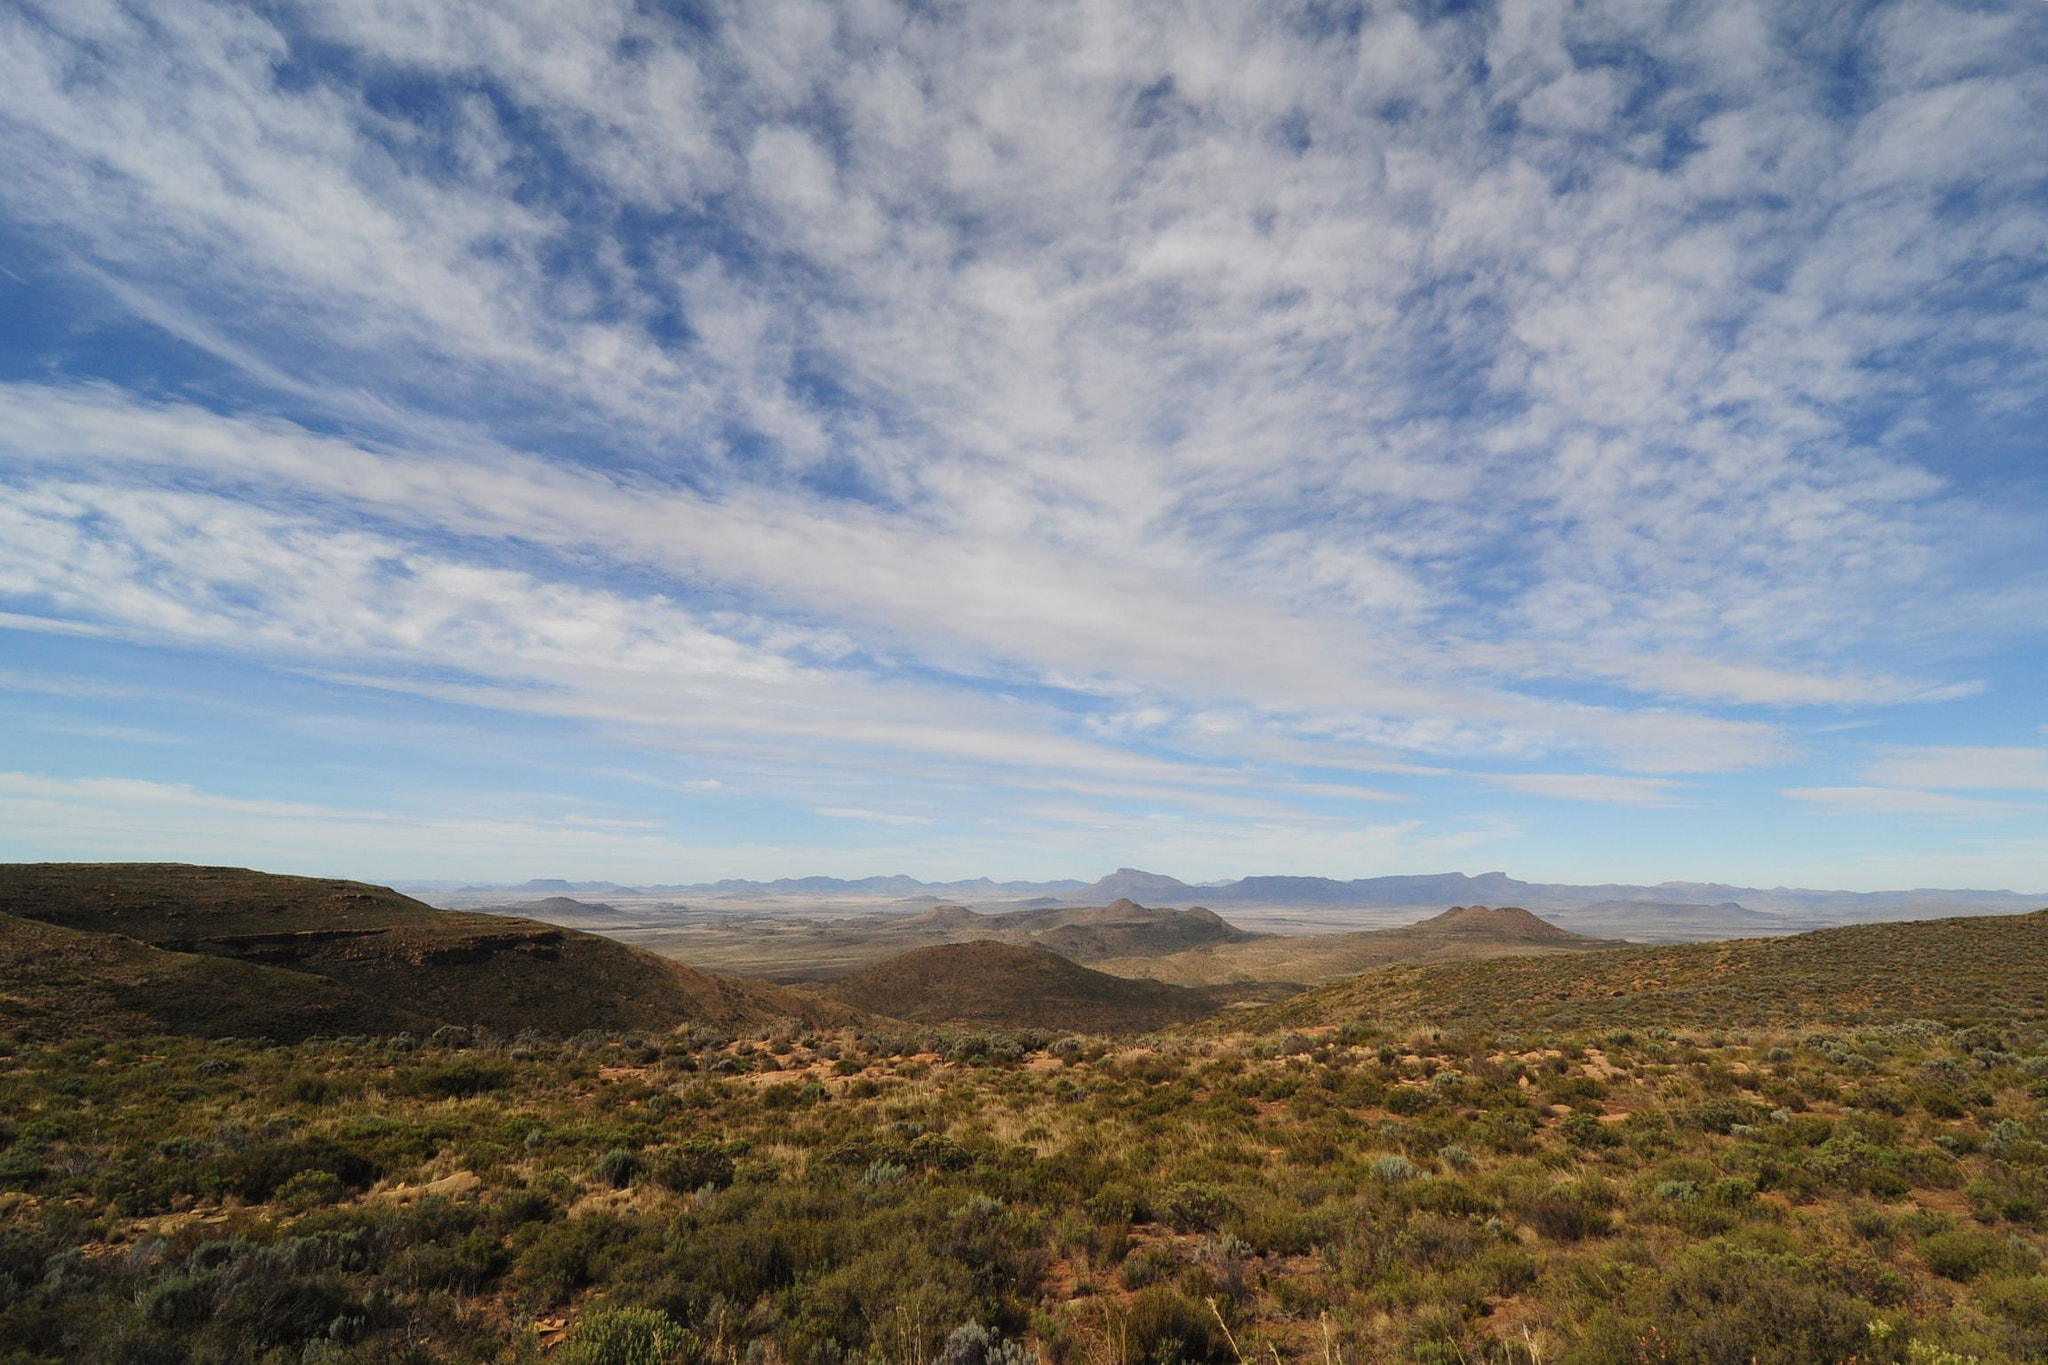 Photograph Karoo Nature by Emile le Roux on 500px